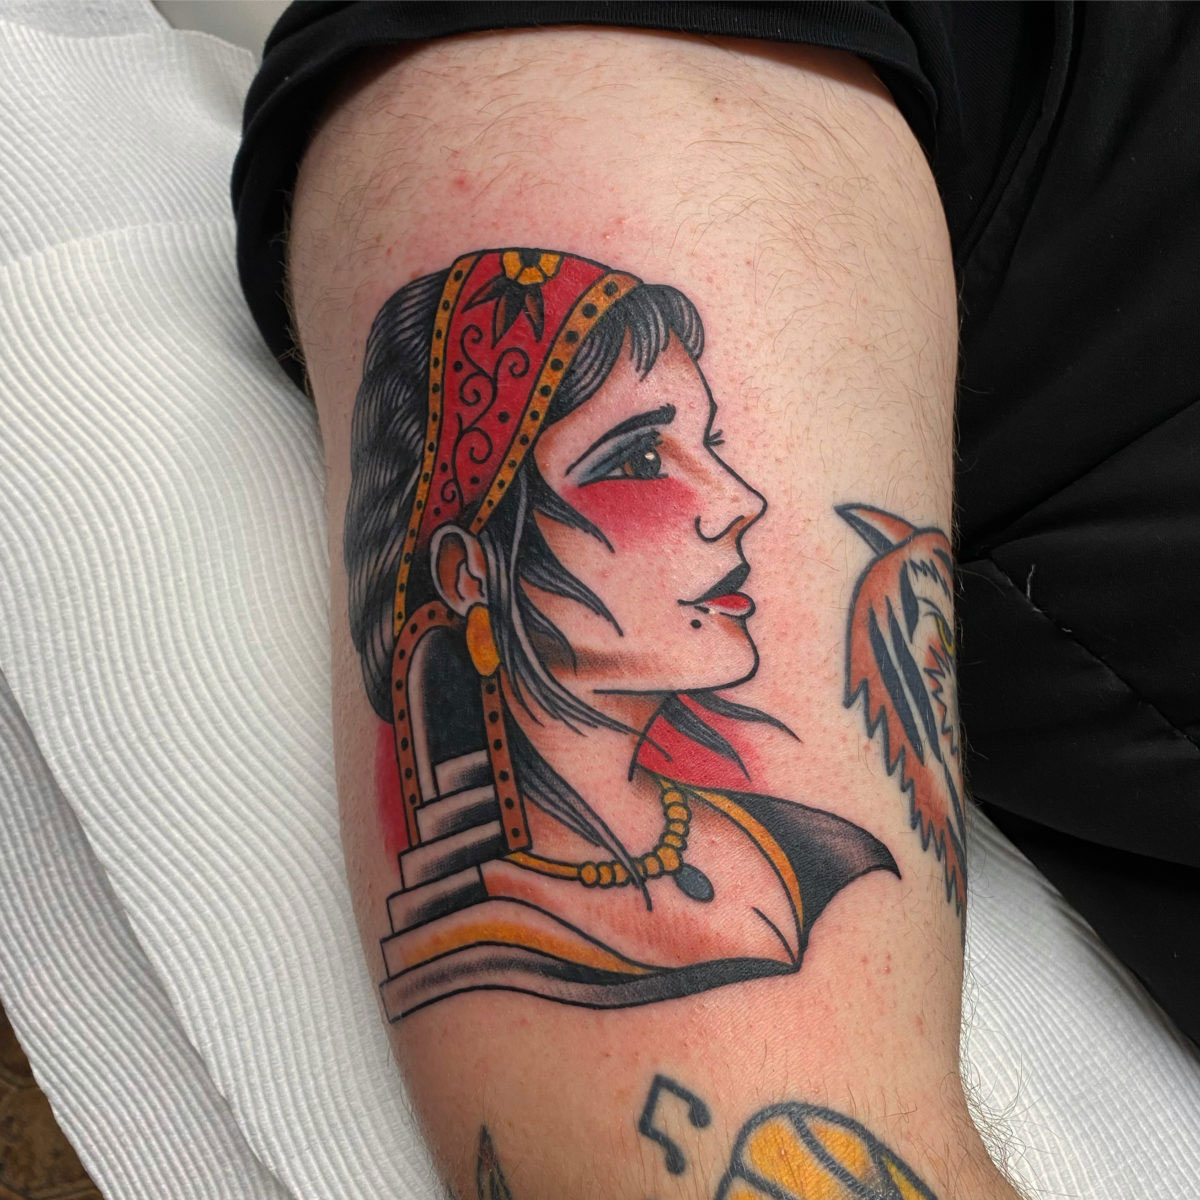 Traditional abstract gypsy lady tattoo with stairs and doorway coming out of her head. tattooed in colour on upper arm.